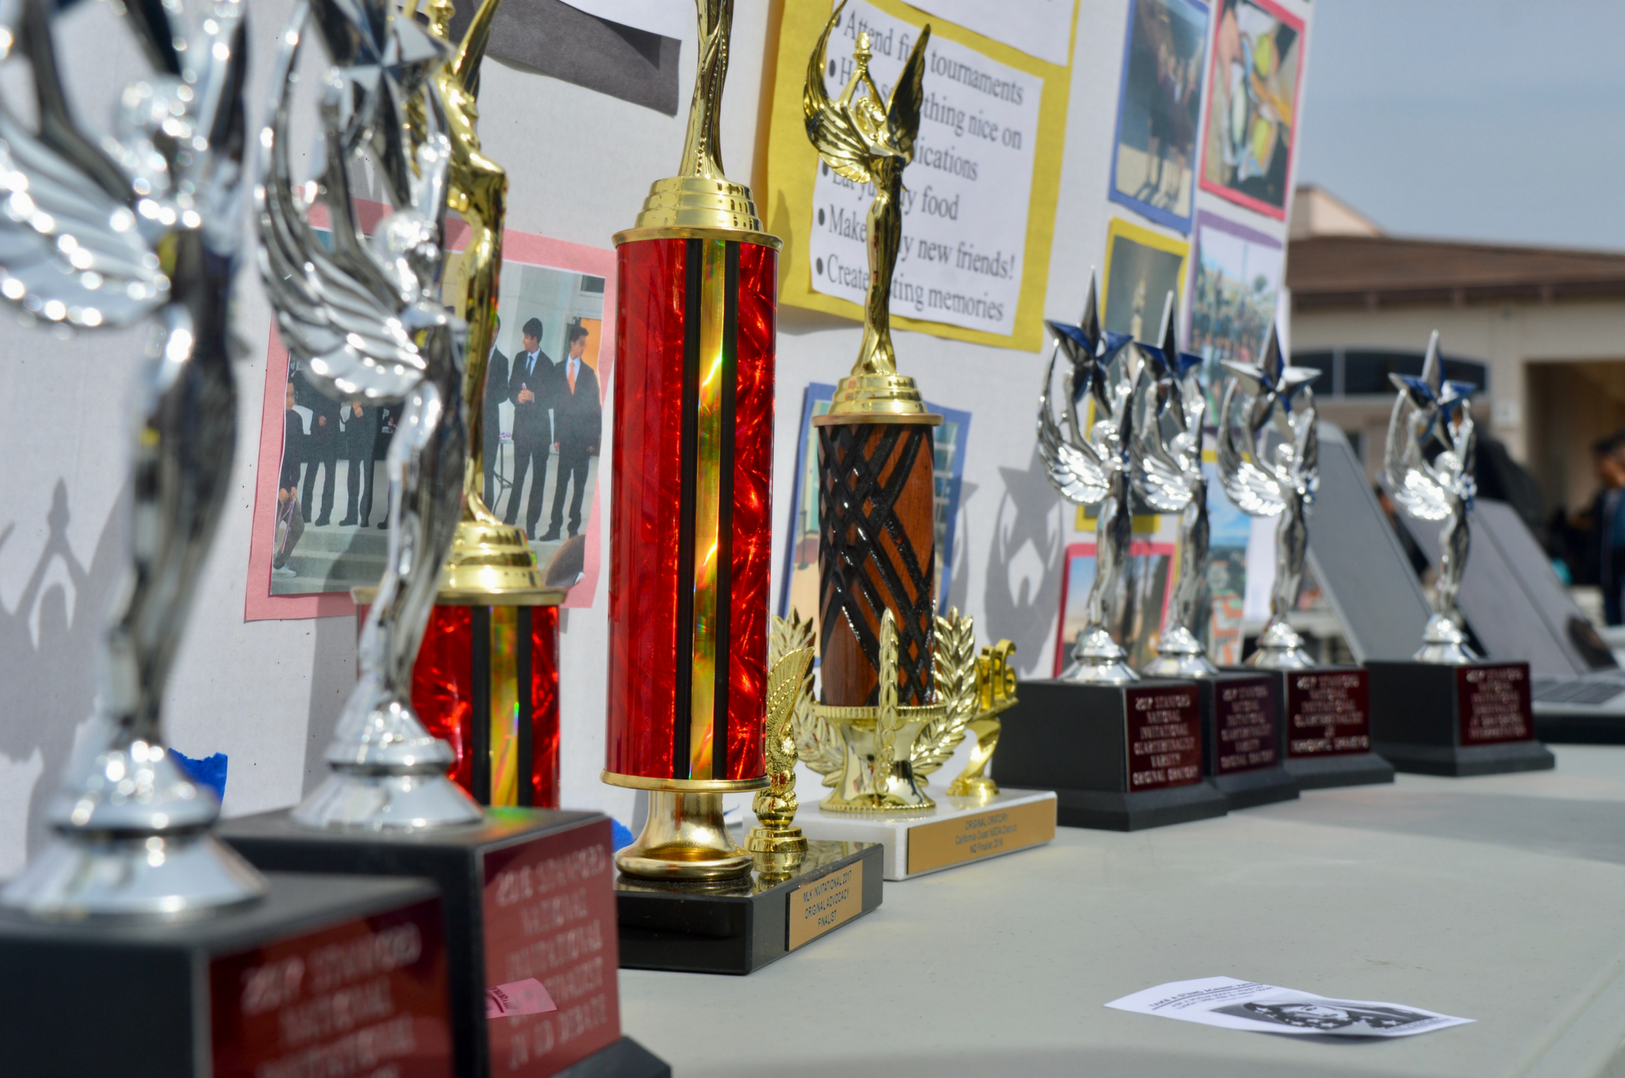 MV Speech and Debate proudly displays just some of their numerous trophies. The glimmering awards of the acclaimed club attracted the attention of students passing by without fail.